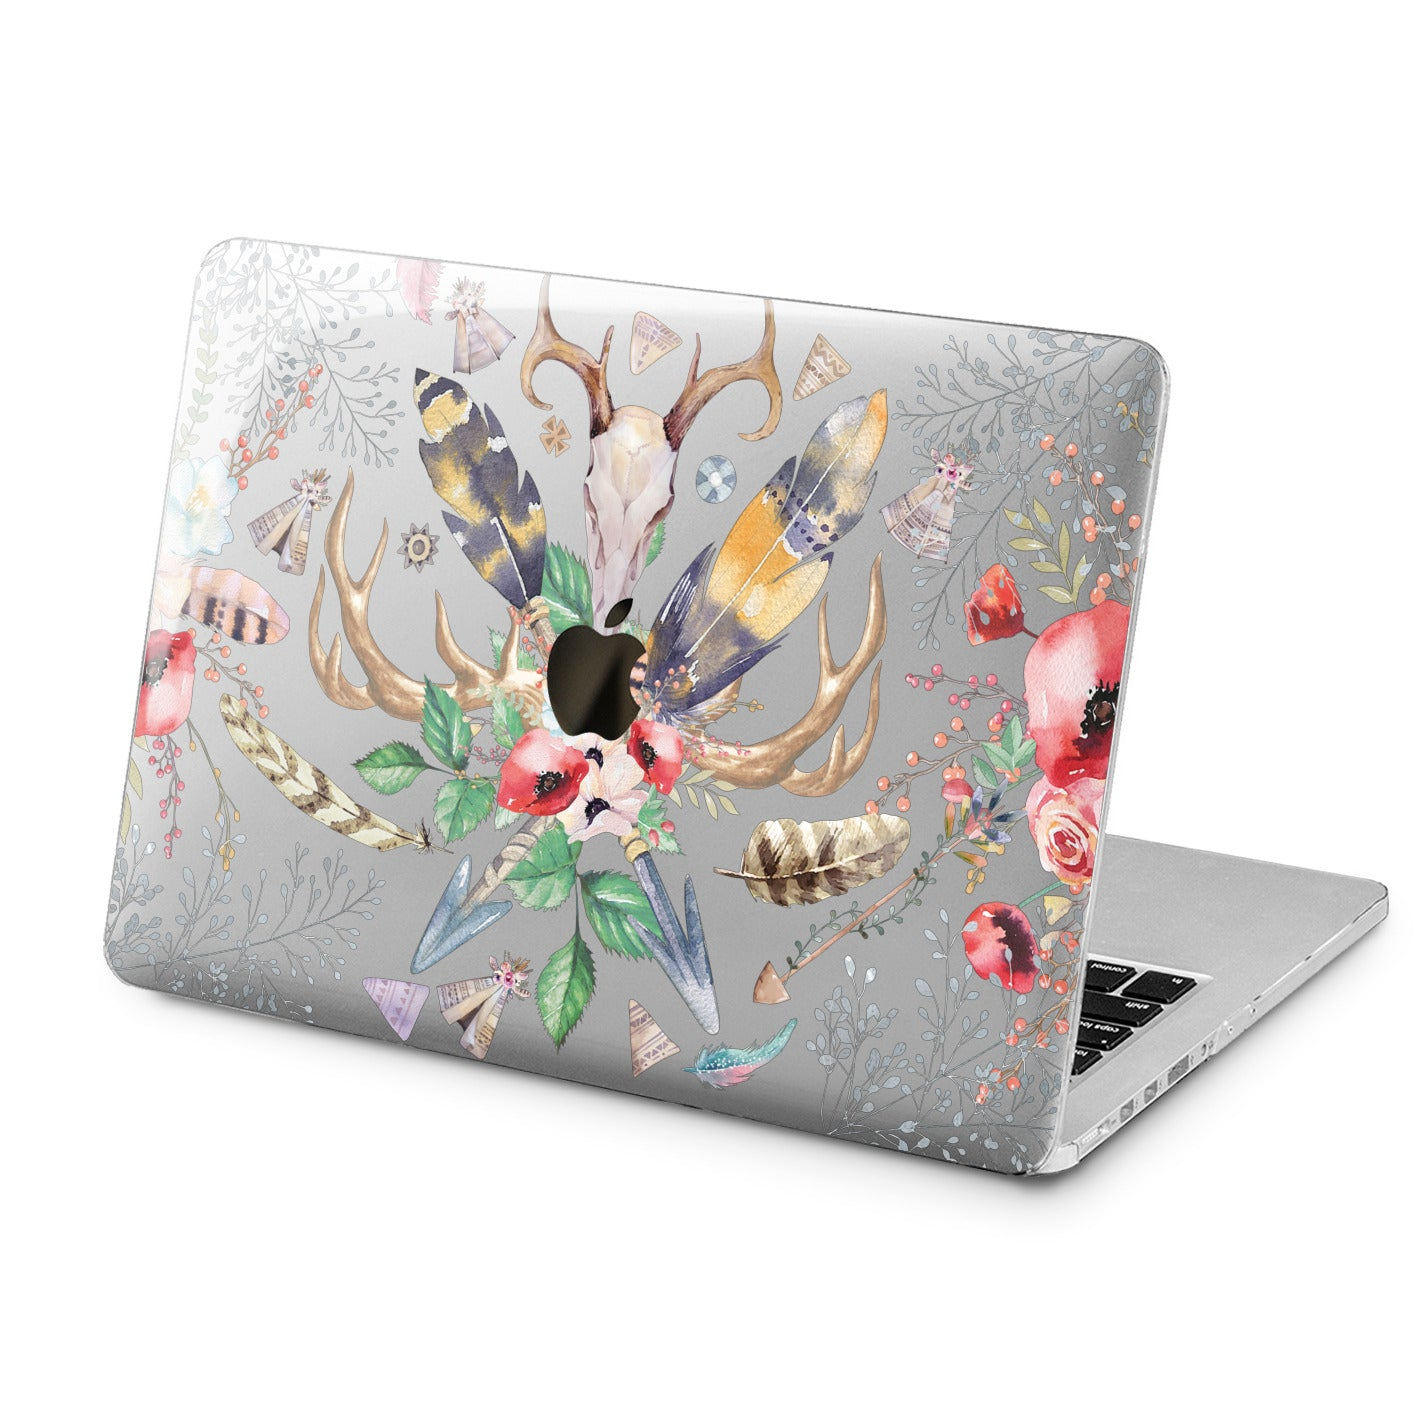 Lex Altern Lex Altern Ethnic Composition Case for your Laptop Apple Macbook.